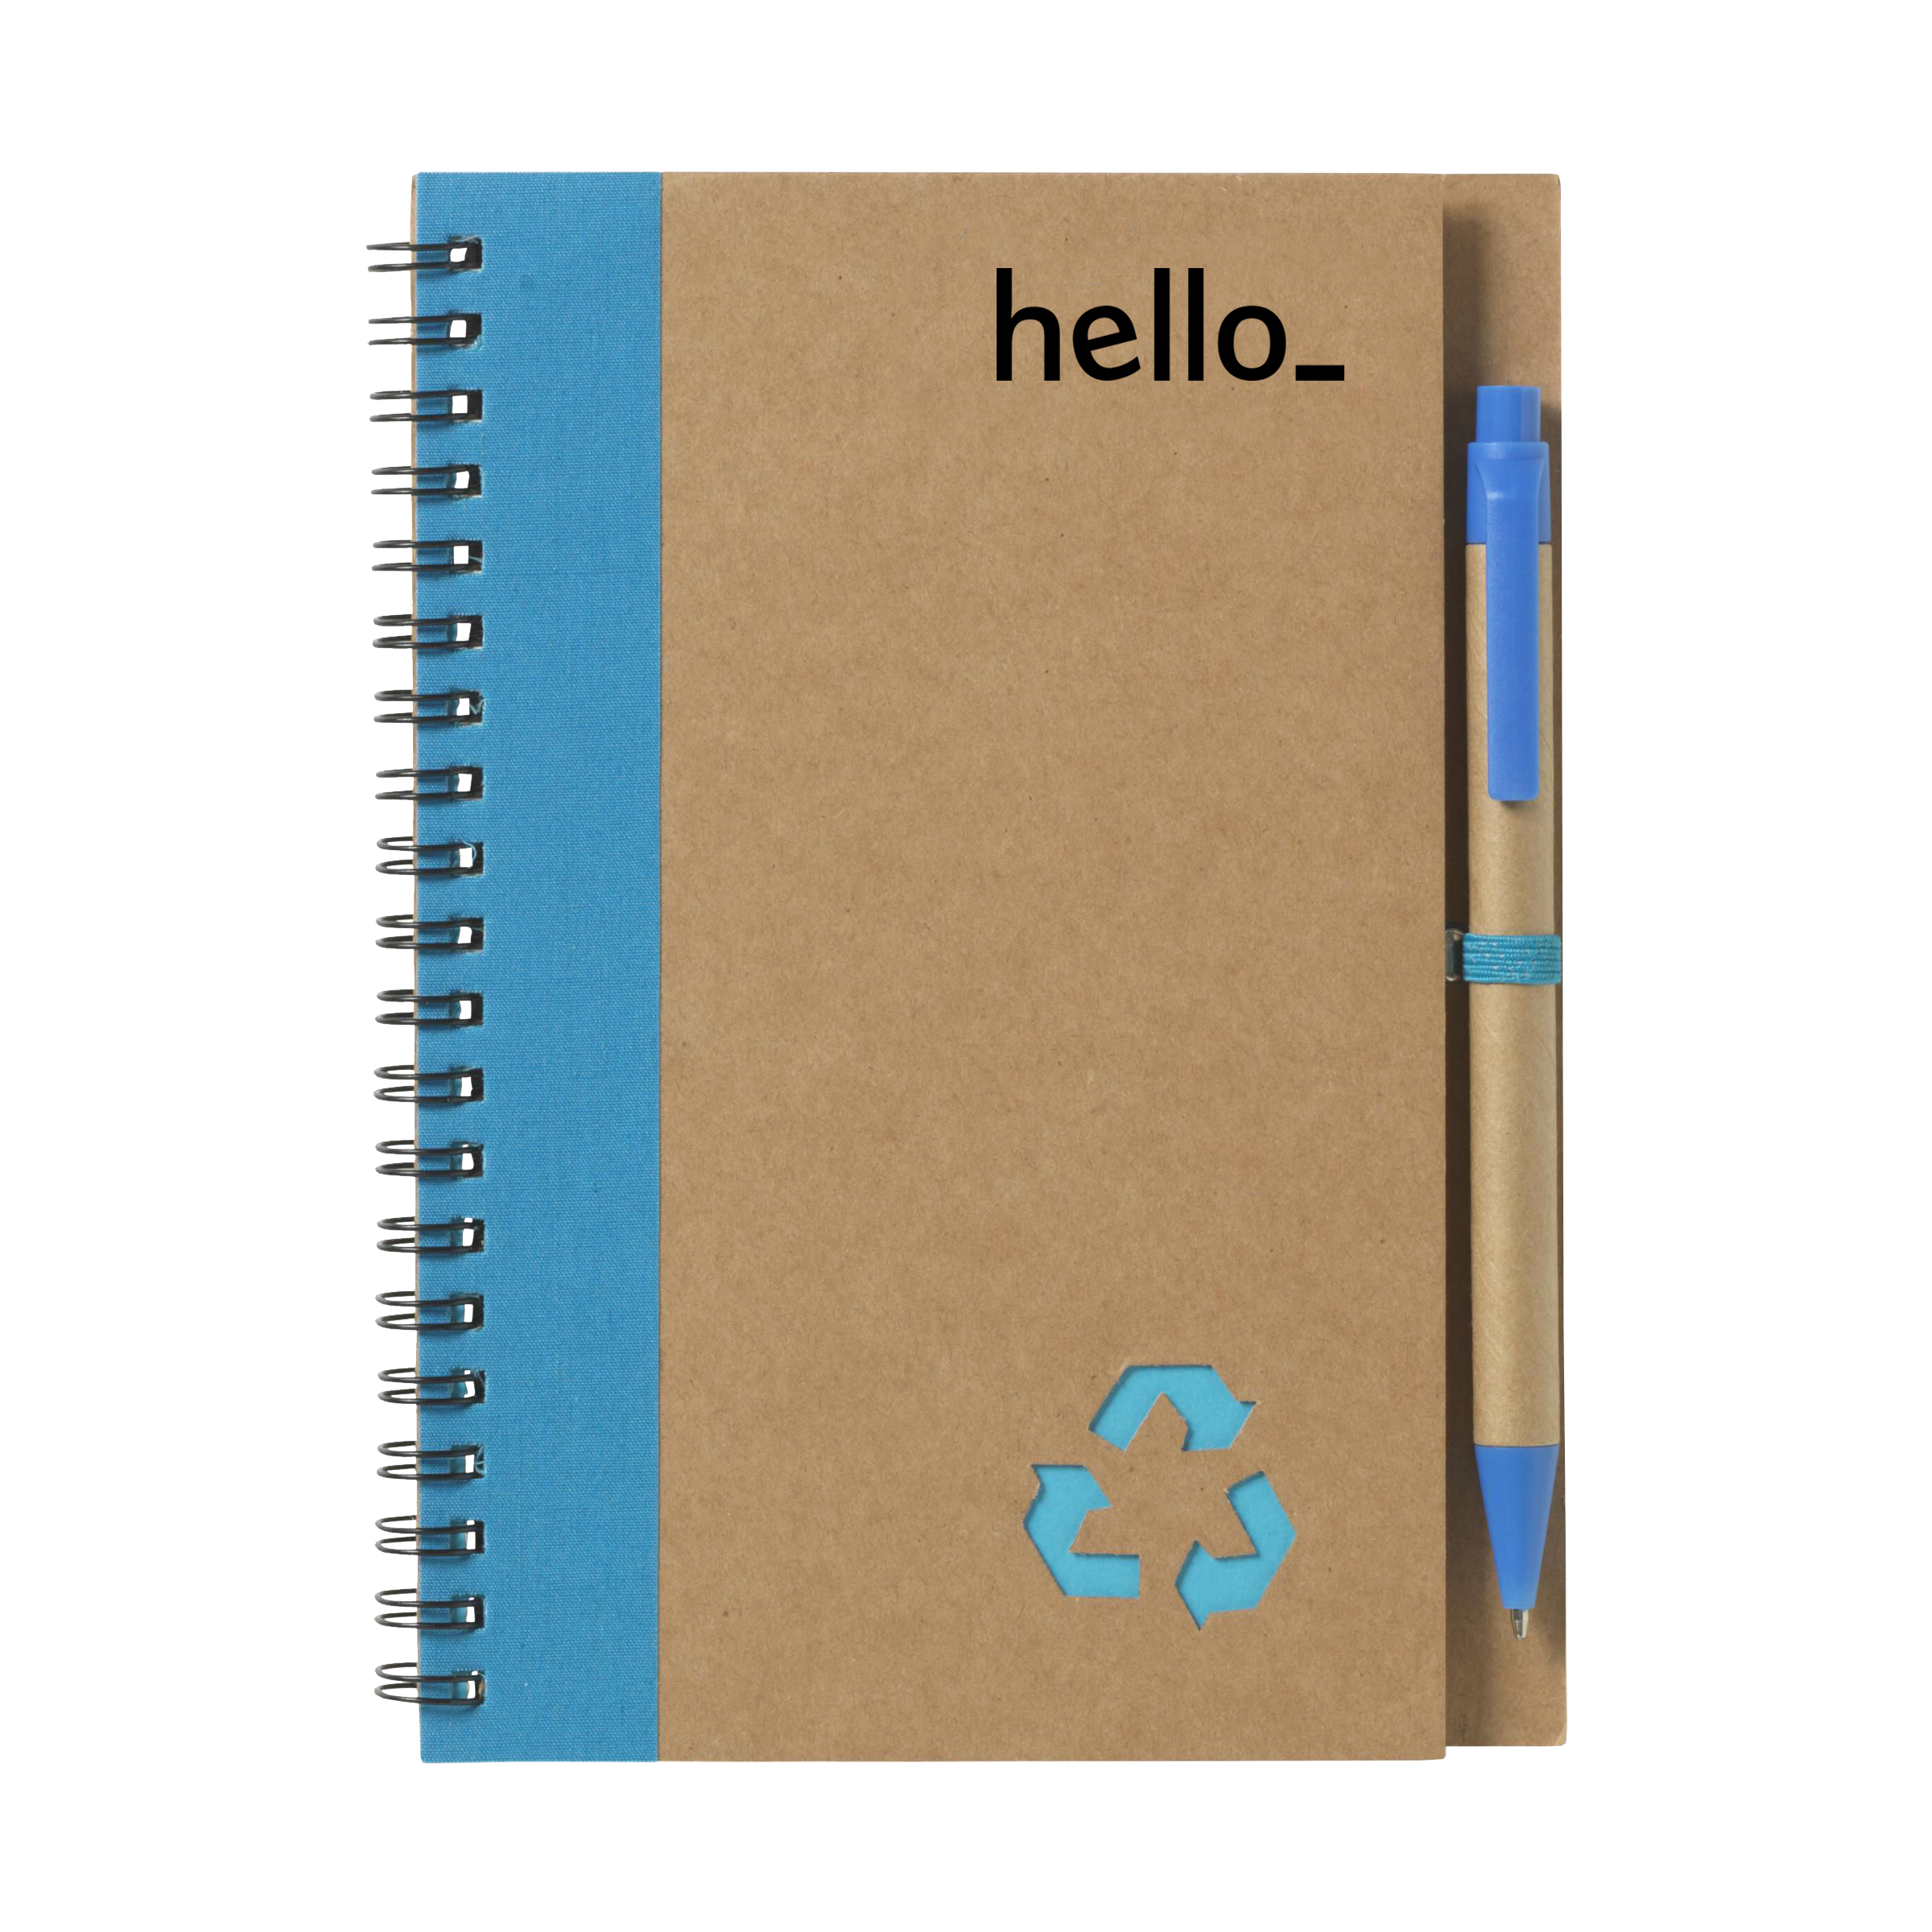 Recycled Notitieboek - Groot formaat